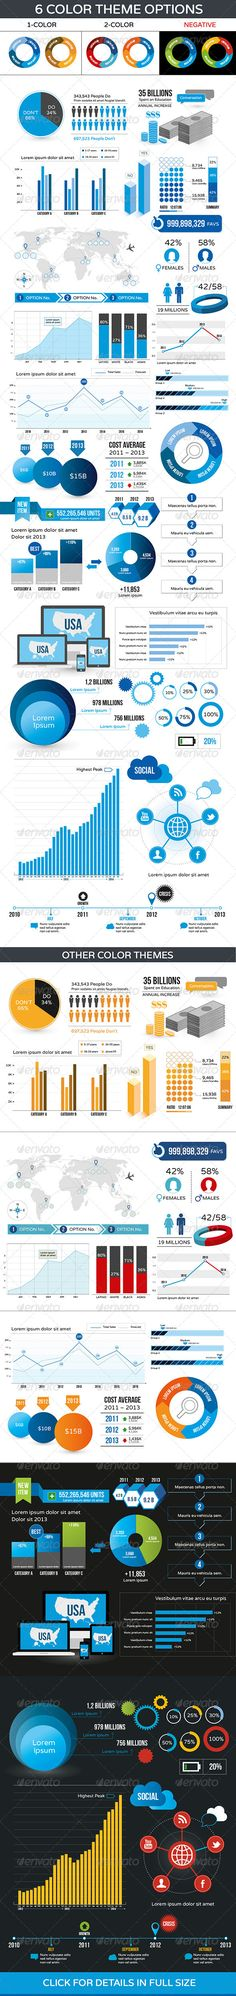 Buy Presentation Infographic Color Options by Mike_pantone on GraphicRiver. Various vector infographic elements for your business presentation. Available in 6 different color theme options on b. Web Design, Chart Design, Infographic Resume, Infographic Templates, Business Presentation, Presentation Design, Brand Fonts, Wordpress Template, Data Visualization